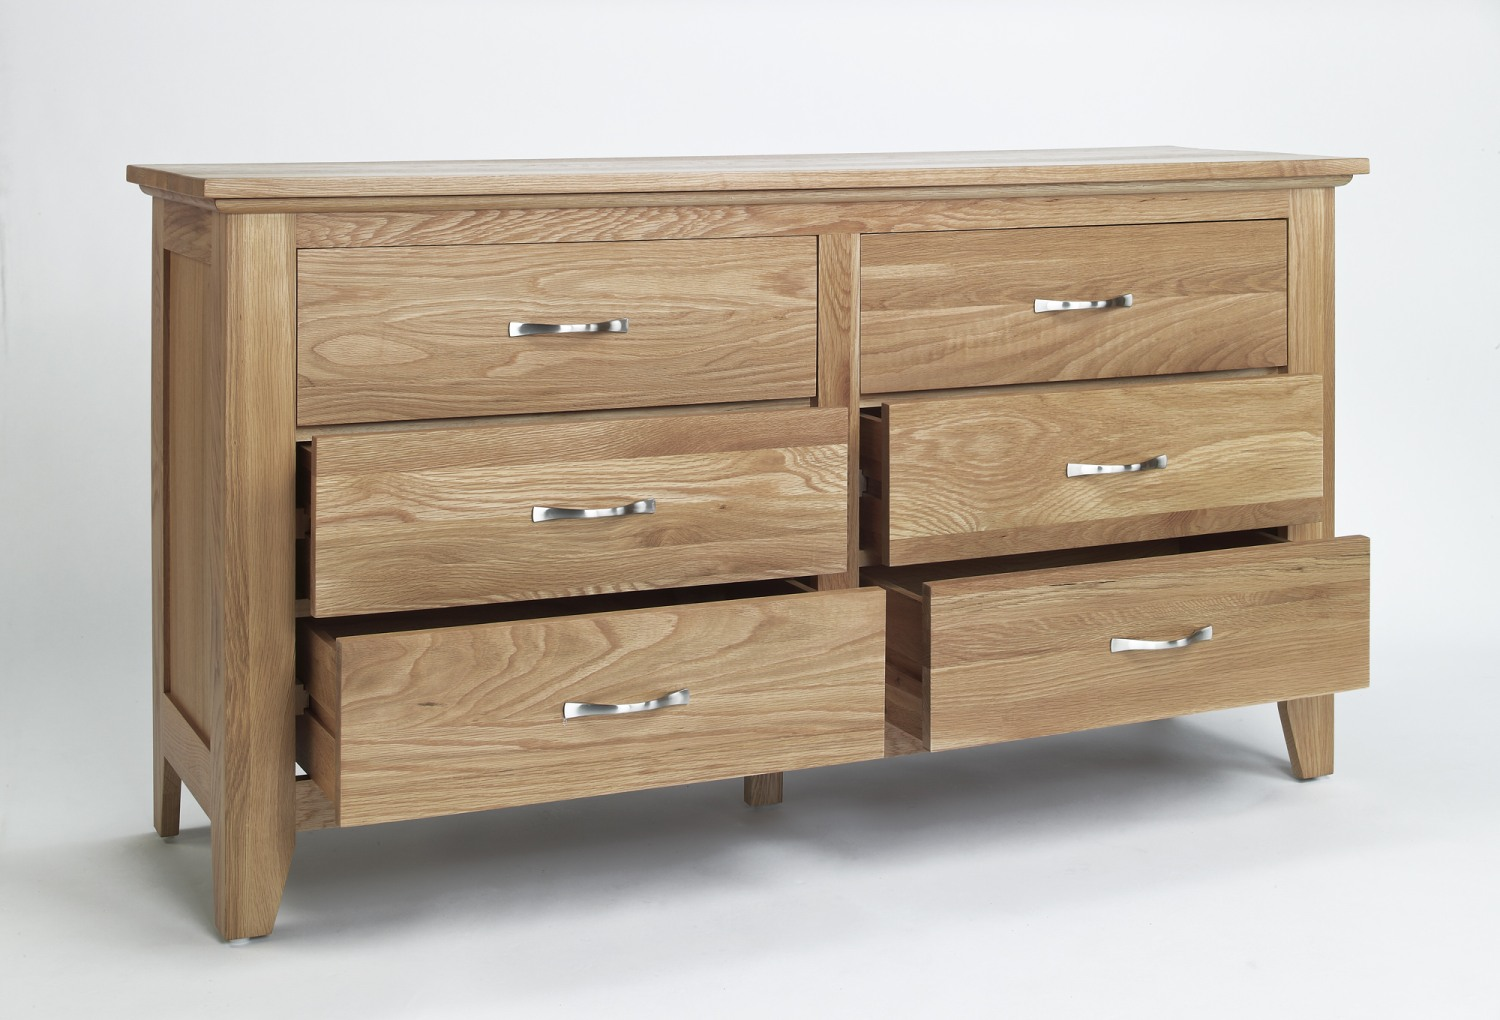 Compton solid oak furniture low bedroom chest of drawers for Solid oak furniture